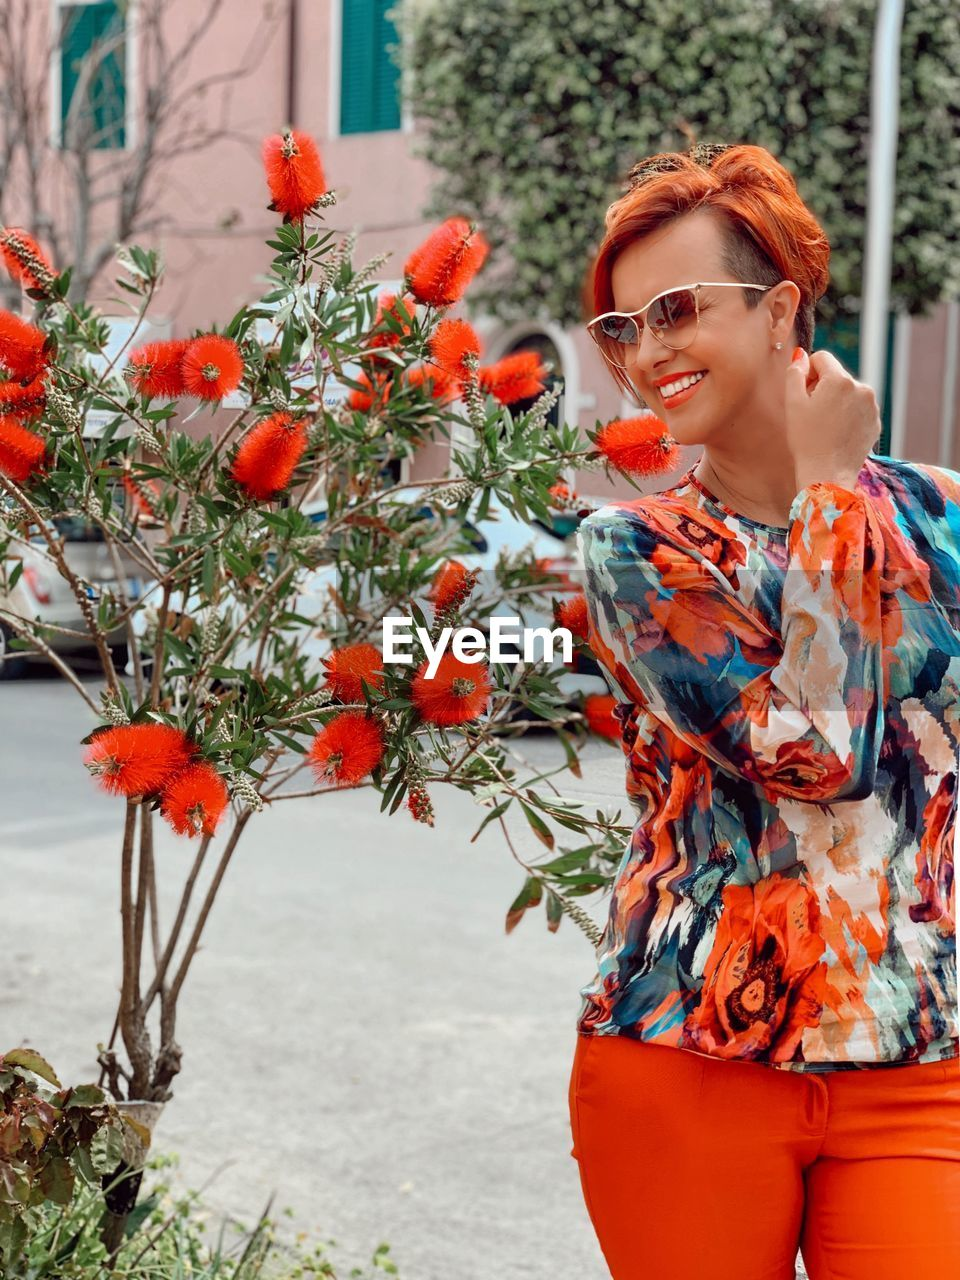 Smiling woman wearing sunglasses standing by plants